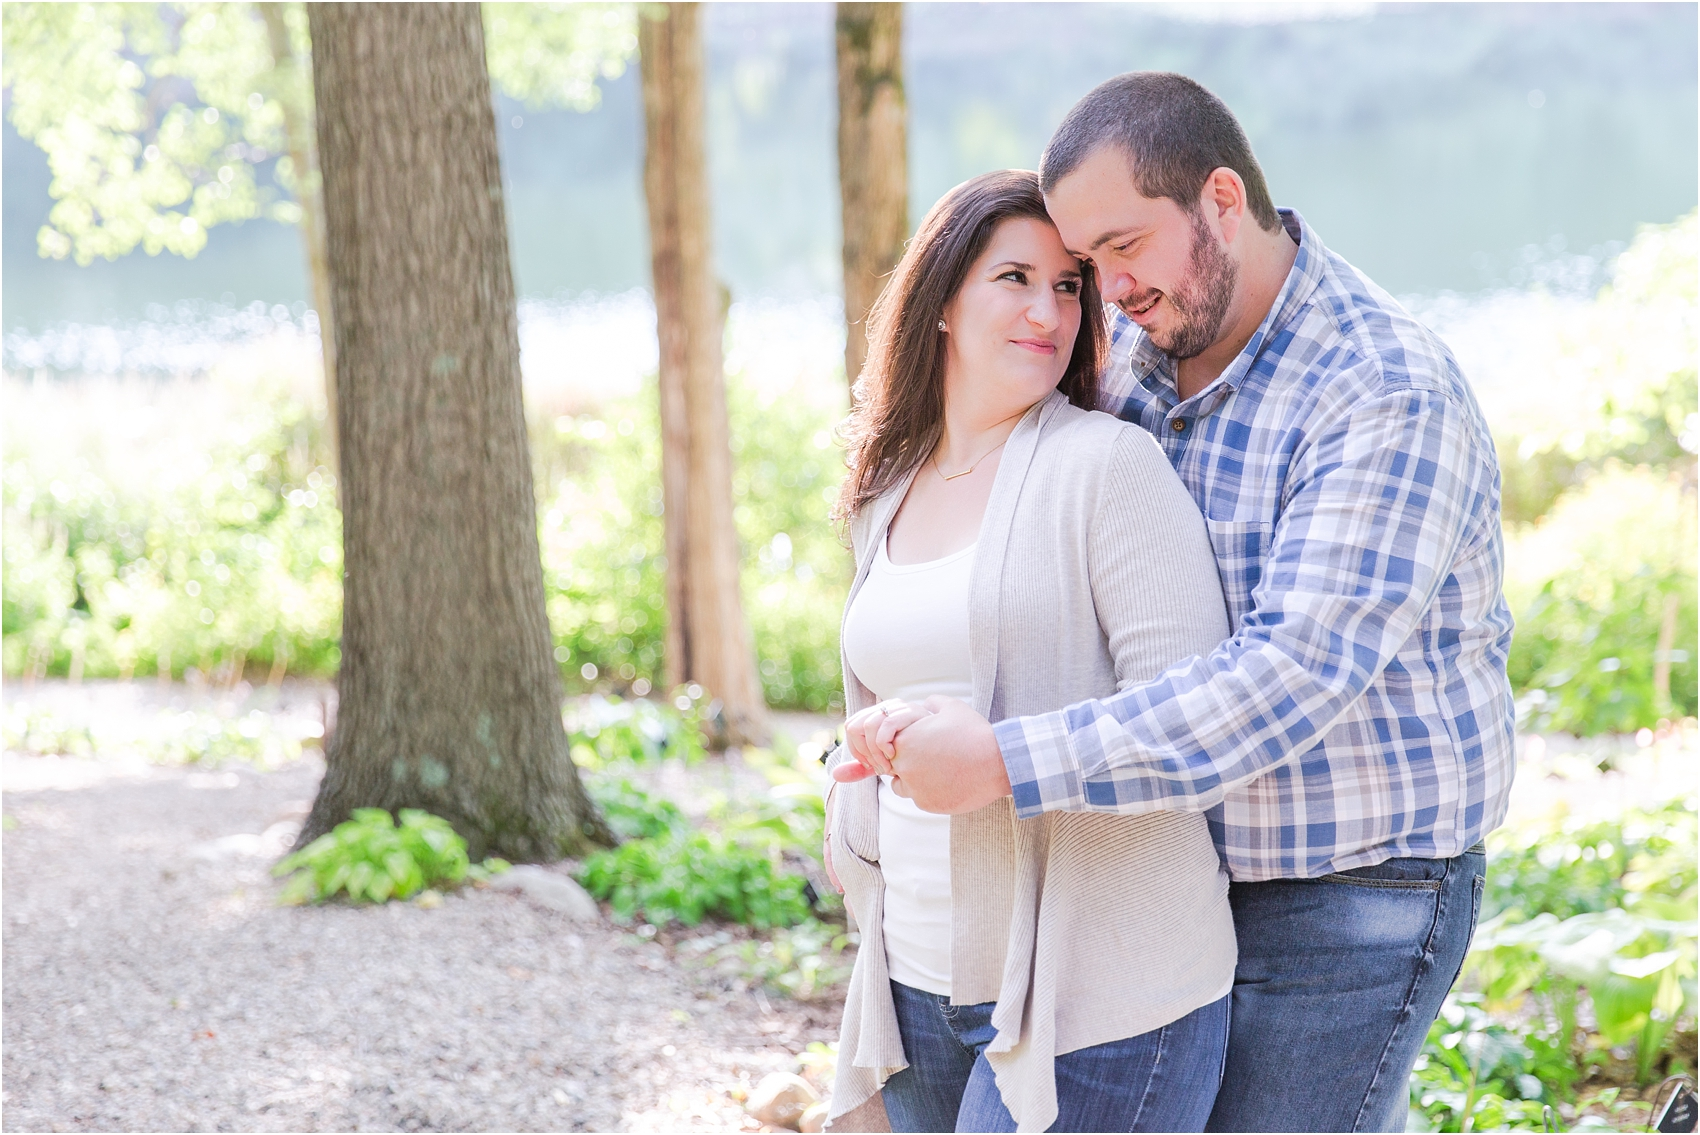 candid-romantic-summer-engagement-photos-at-hidden-lake-gardens-and-black-fire-winery-in-tipton-mi-by-courtney-carolyn-photography_0022.jpg